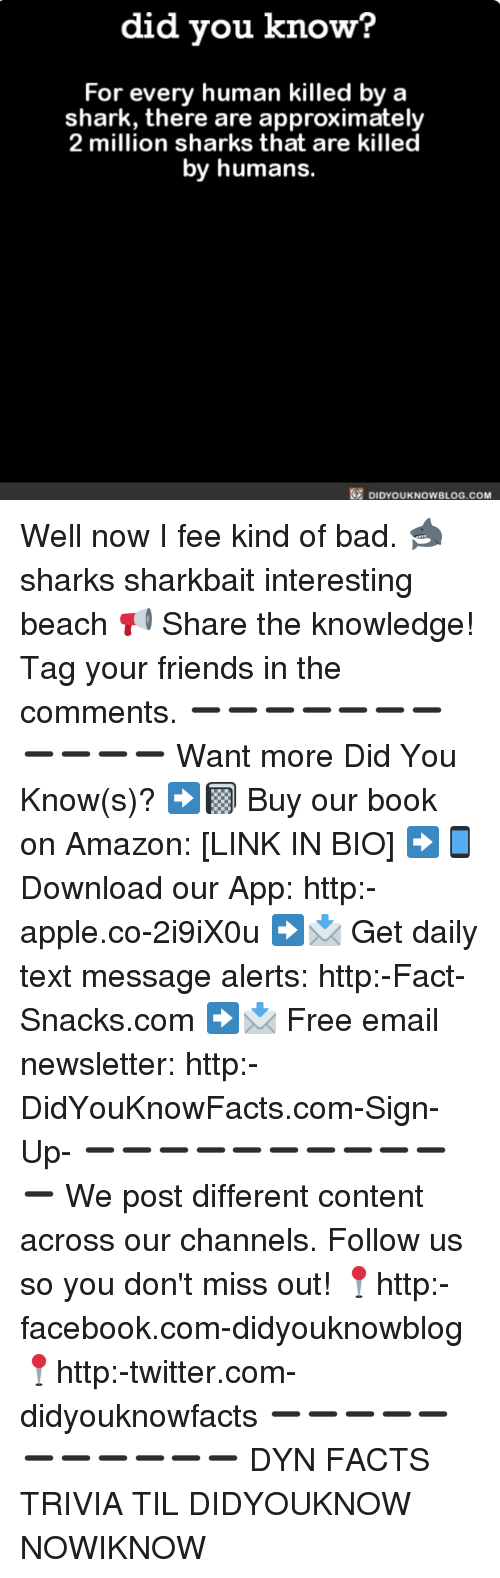 Amazon, Apple, and Bad: did you know?  For every human killed by a  shark, there are approximately  2 million sharks that are killed  by humans.  DIDYOUKNOWBLOG.COM Well now I fee kind of bad. 🦈 sharks sharkbait interesting beach 📢 Share the knowledge! Tag your friends in the comments. ➖➖➖➖➖➖➖➖➖➖➖ Want more Did You Know(s)? ➡📓 Buy our book on Amazon: [LINK IN BIO] ➡📱 Download our App: http:-apple.co-2i9iX0u ➡📩 Get daily text message alerts: http:-Fact-Snacks.com ➡📩 Free email newsletter: http:-DidYouKnowFacts.com-Sign-Up- ➖➖➖➖➖➖➖➖➖➖➖ We post different content across our channels. Follow us so you don't miss out! 📍http:-facebook.com-didyouknowblog 📍http:-twitter.com-didyouknowfacts ➖➖➖➖➖➖➖➖➖➖➖ DYN FACTS TRIVIA TIL DIDYOUKNOW NOWIKNOW